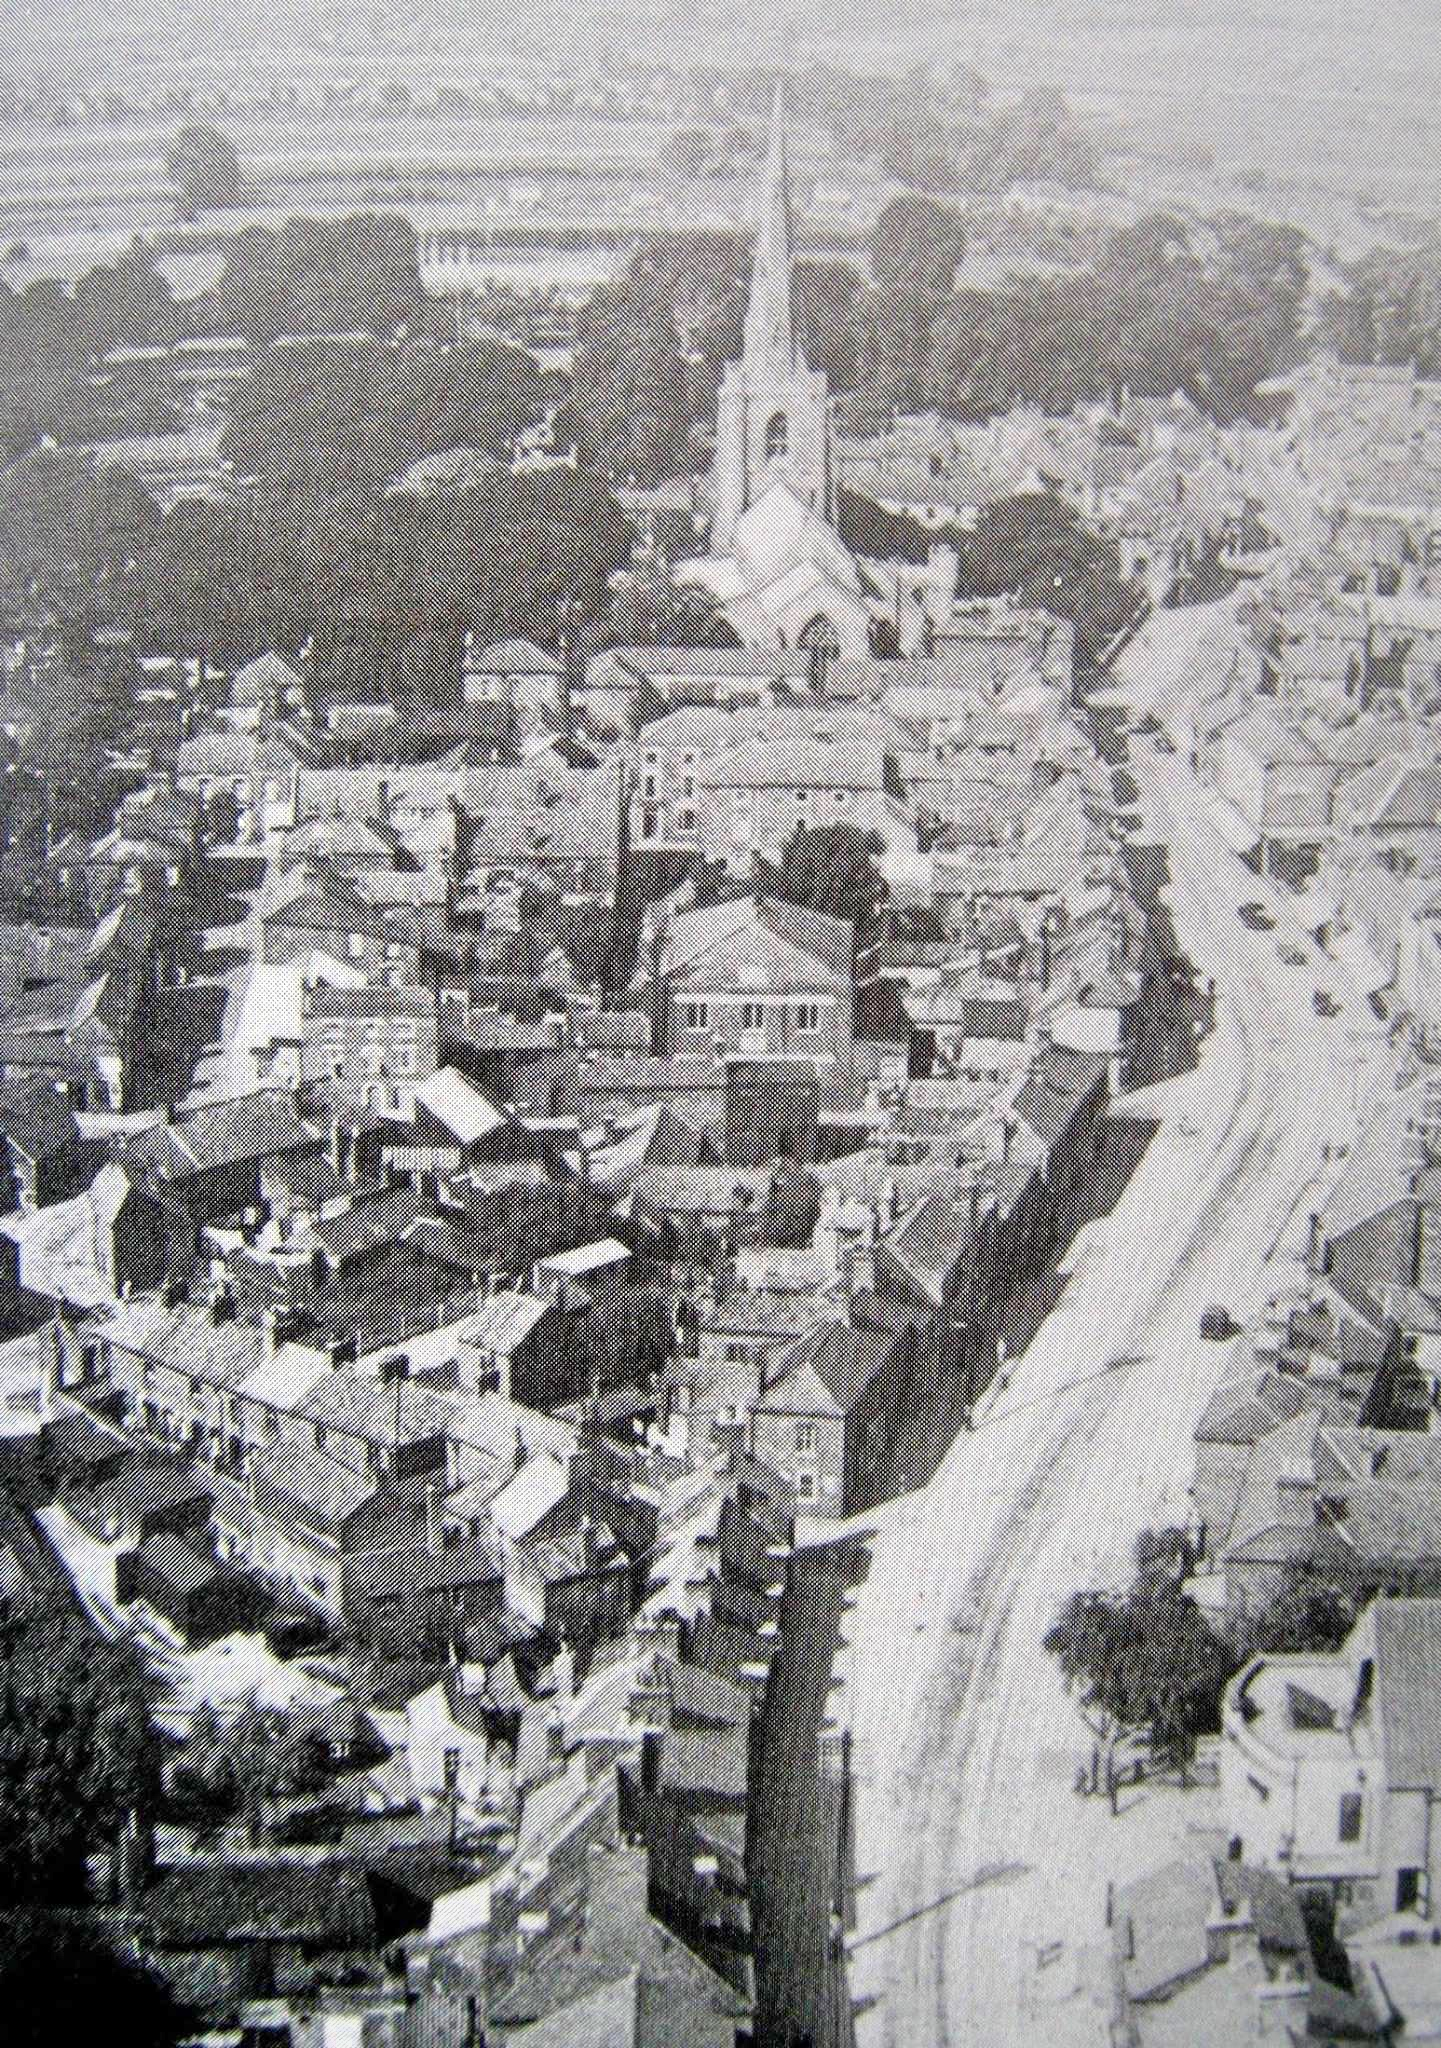 Aerial photo showing a view of Holbeach